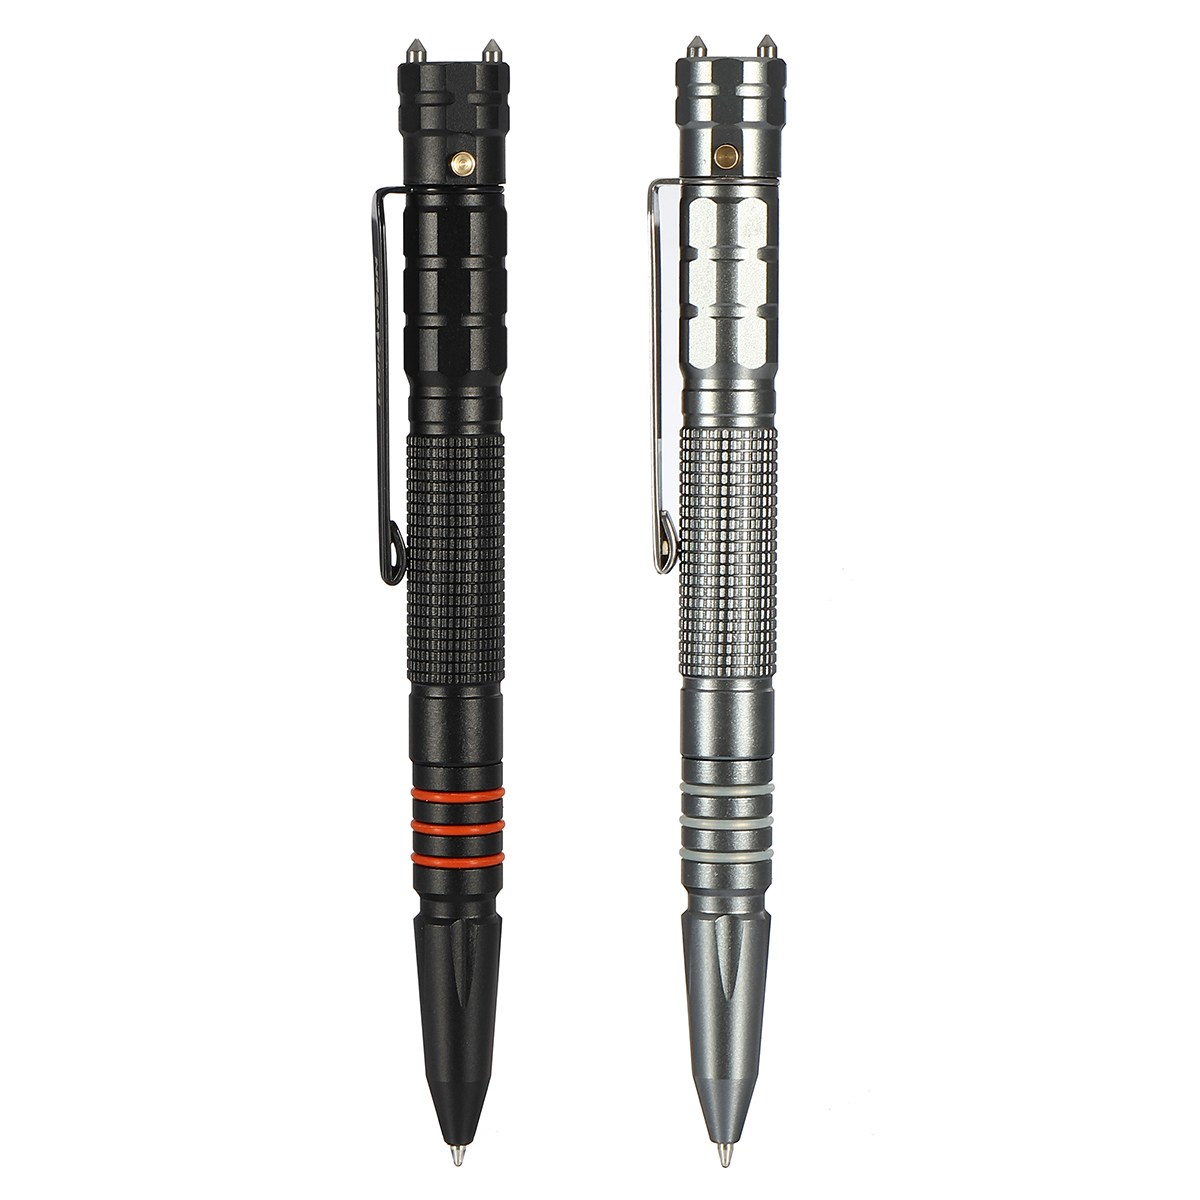 Safurance Multifunctional Tungsten Steel Tactical Pen Tool With LED Flashlight Torch Lamp Self Protection Security new 7 in 1 multifunctional tool led flashlight camping hiking tool tool screwdriver daily tool torch lamp charging use 18650